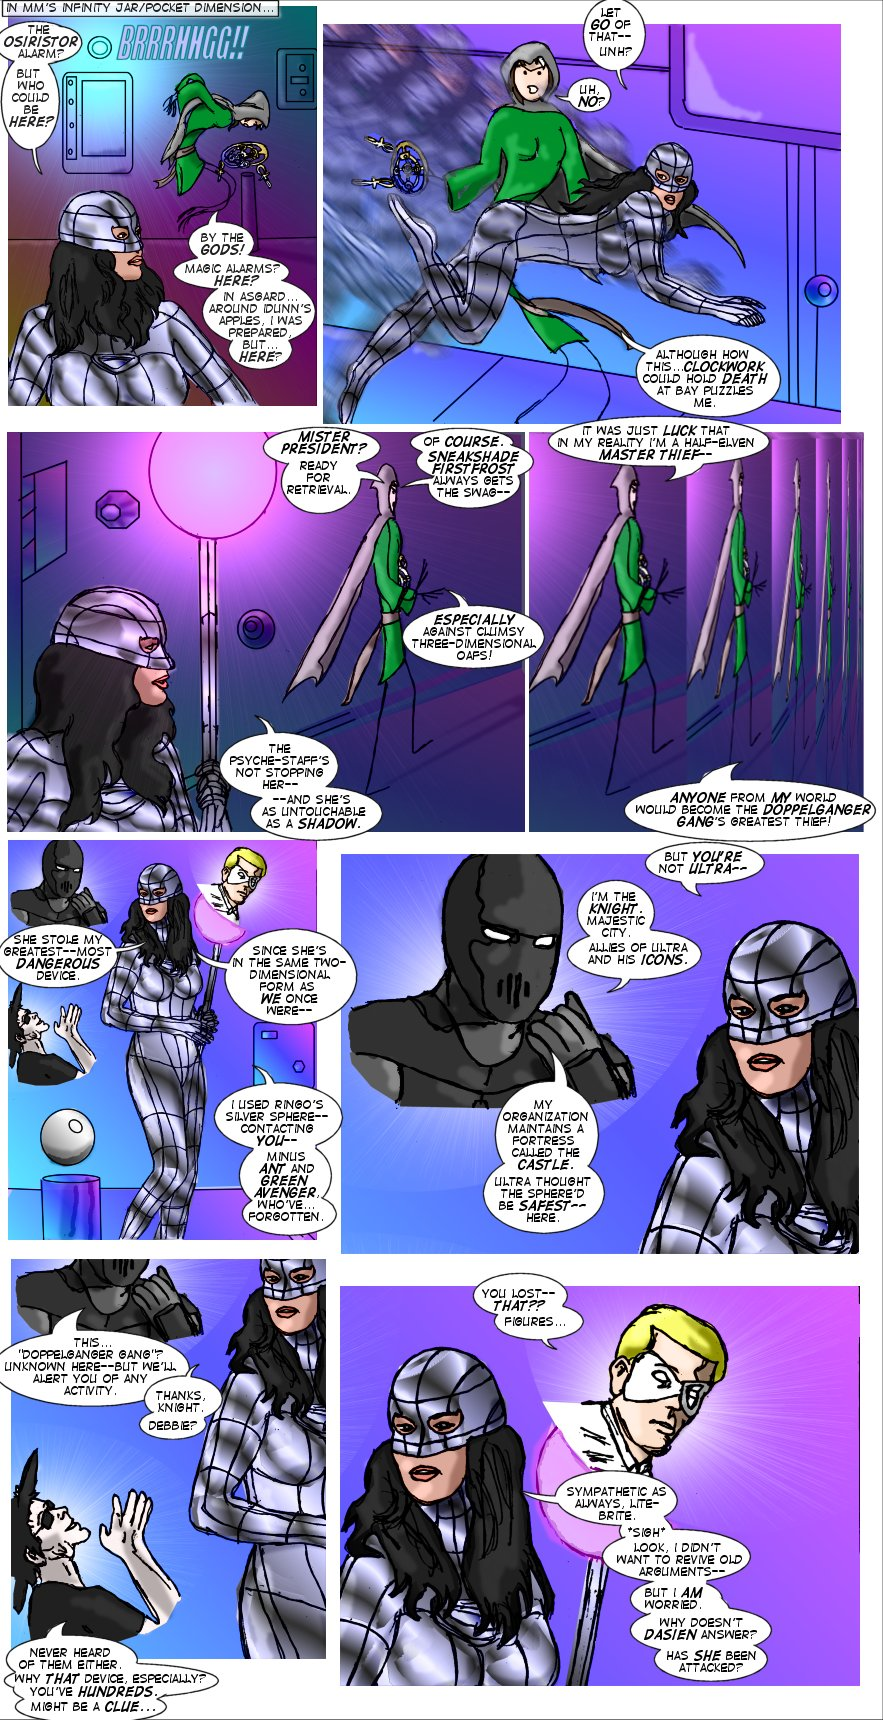 Crossoverkill - Chapter 1, Page 14